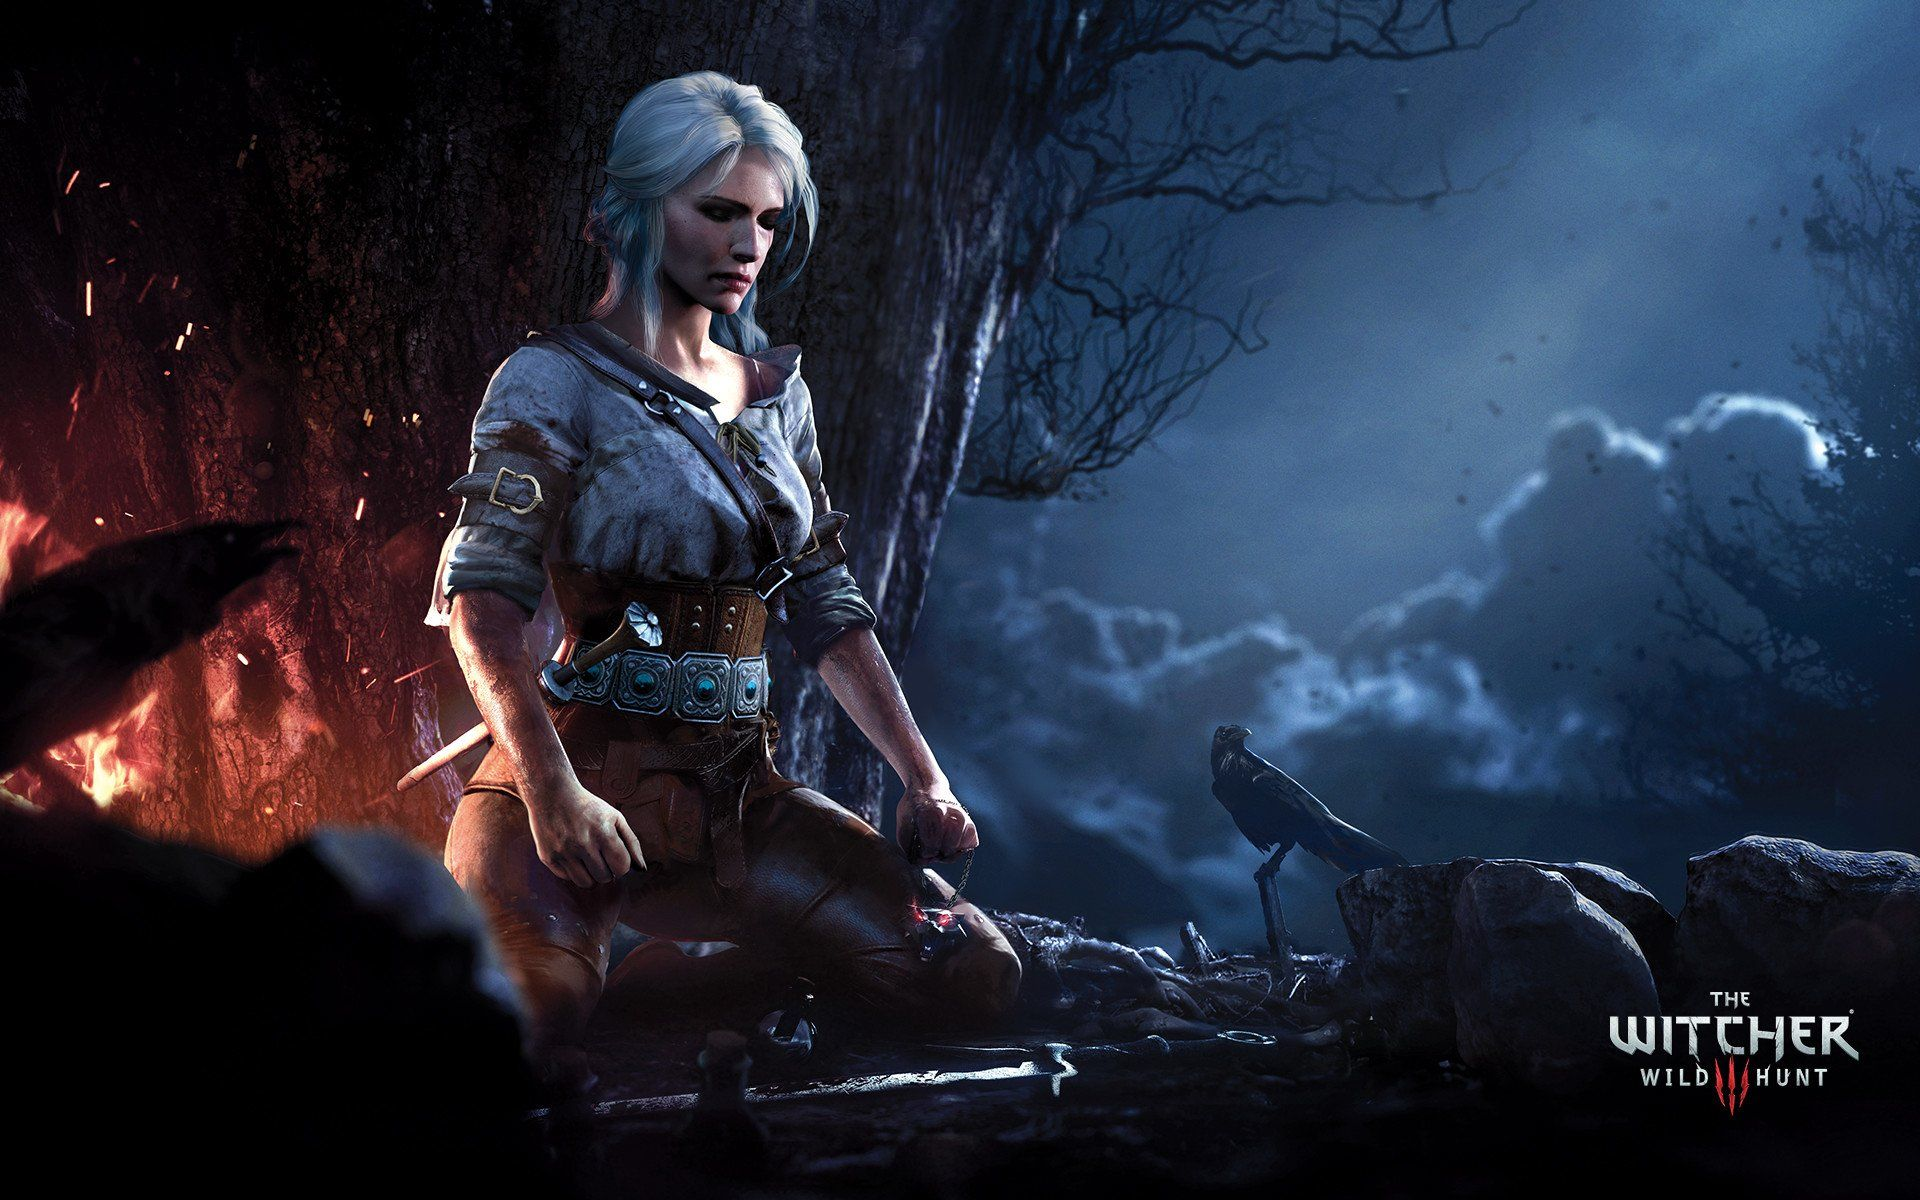 The Witcher Ciri, Background Wallpaper HD